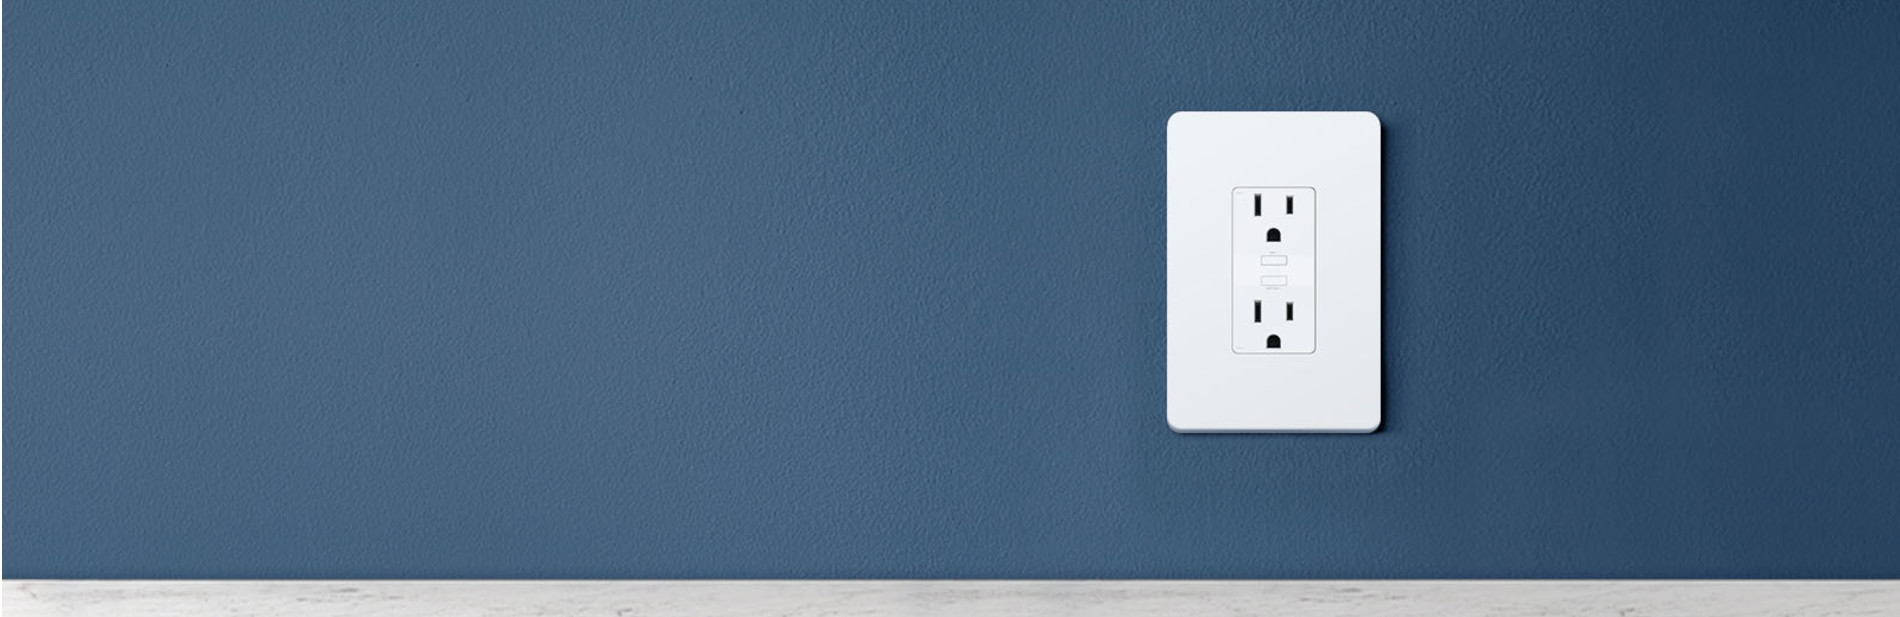 hight resolution of smarter in wall outlet